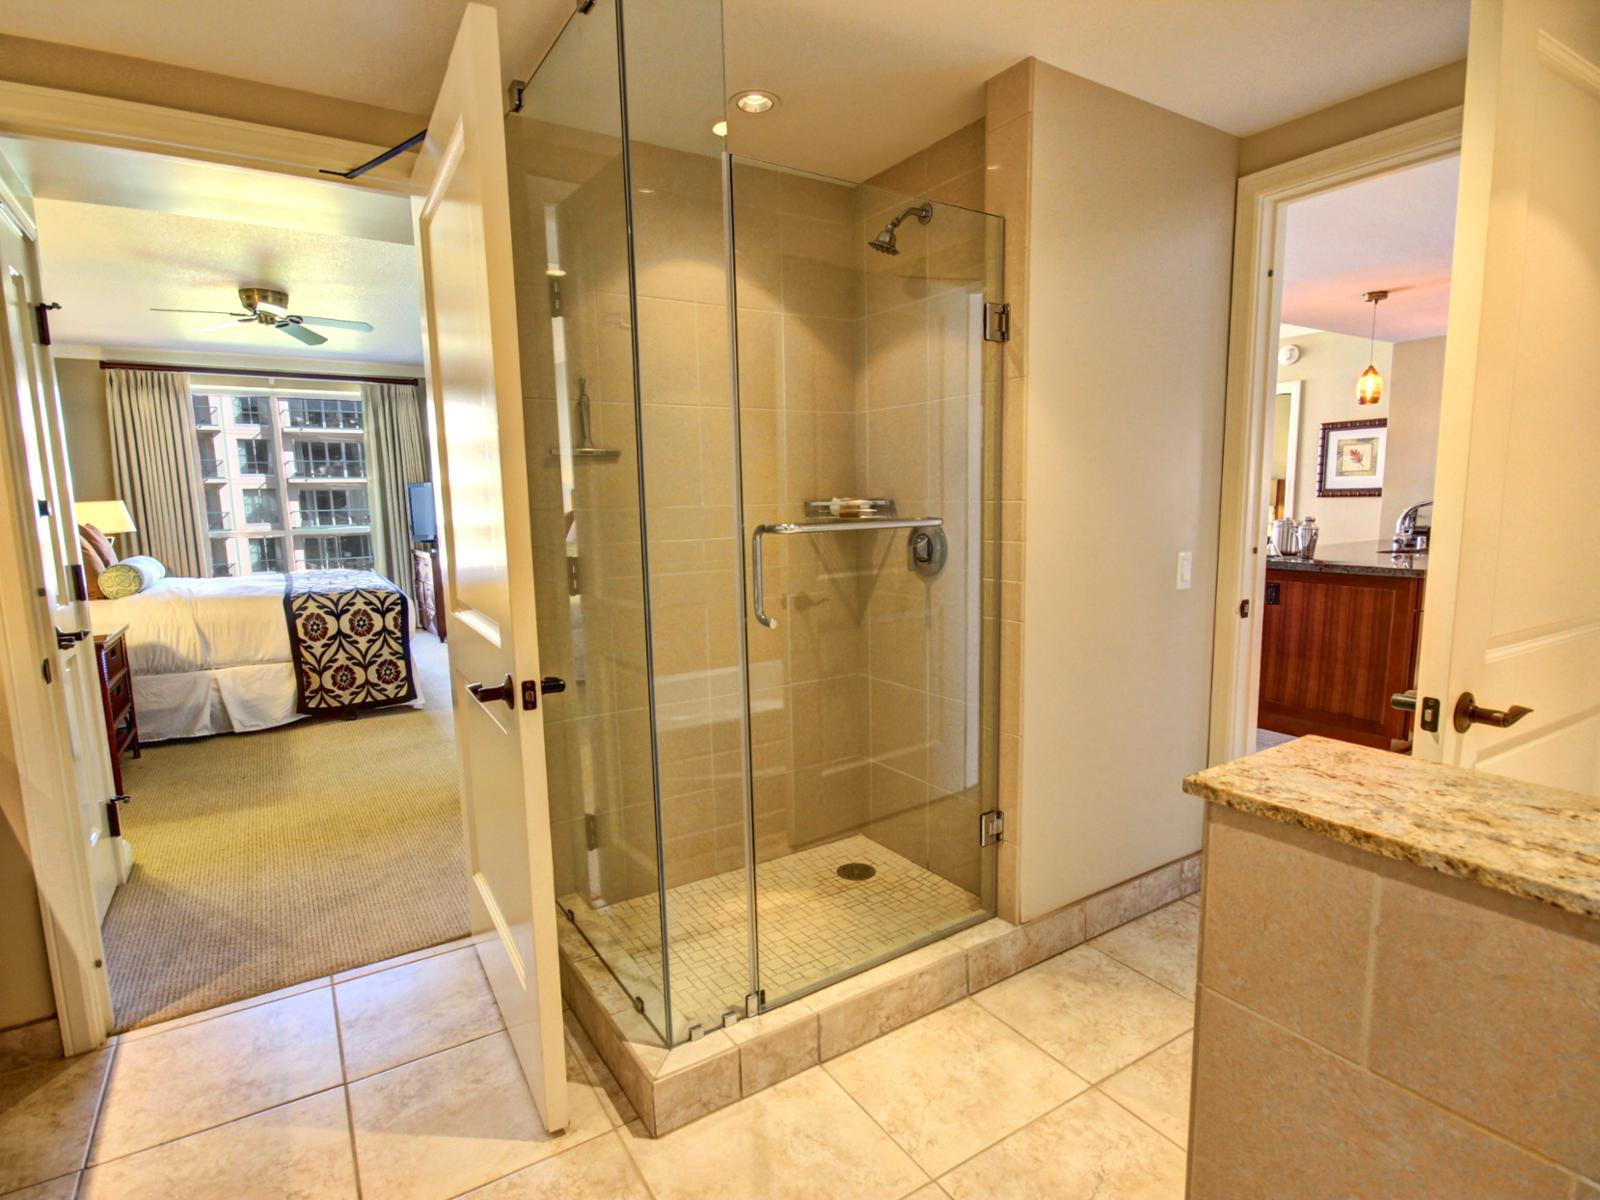 Separate glassed in shower showing both access to living room and bedroom.